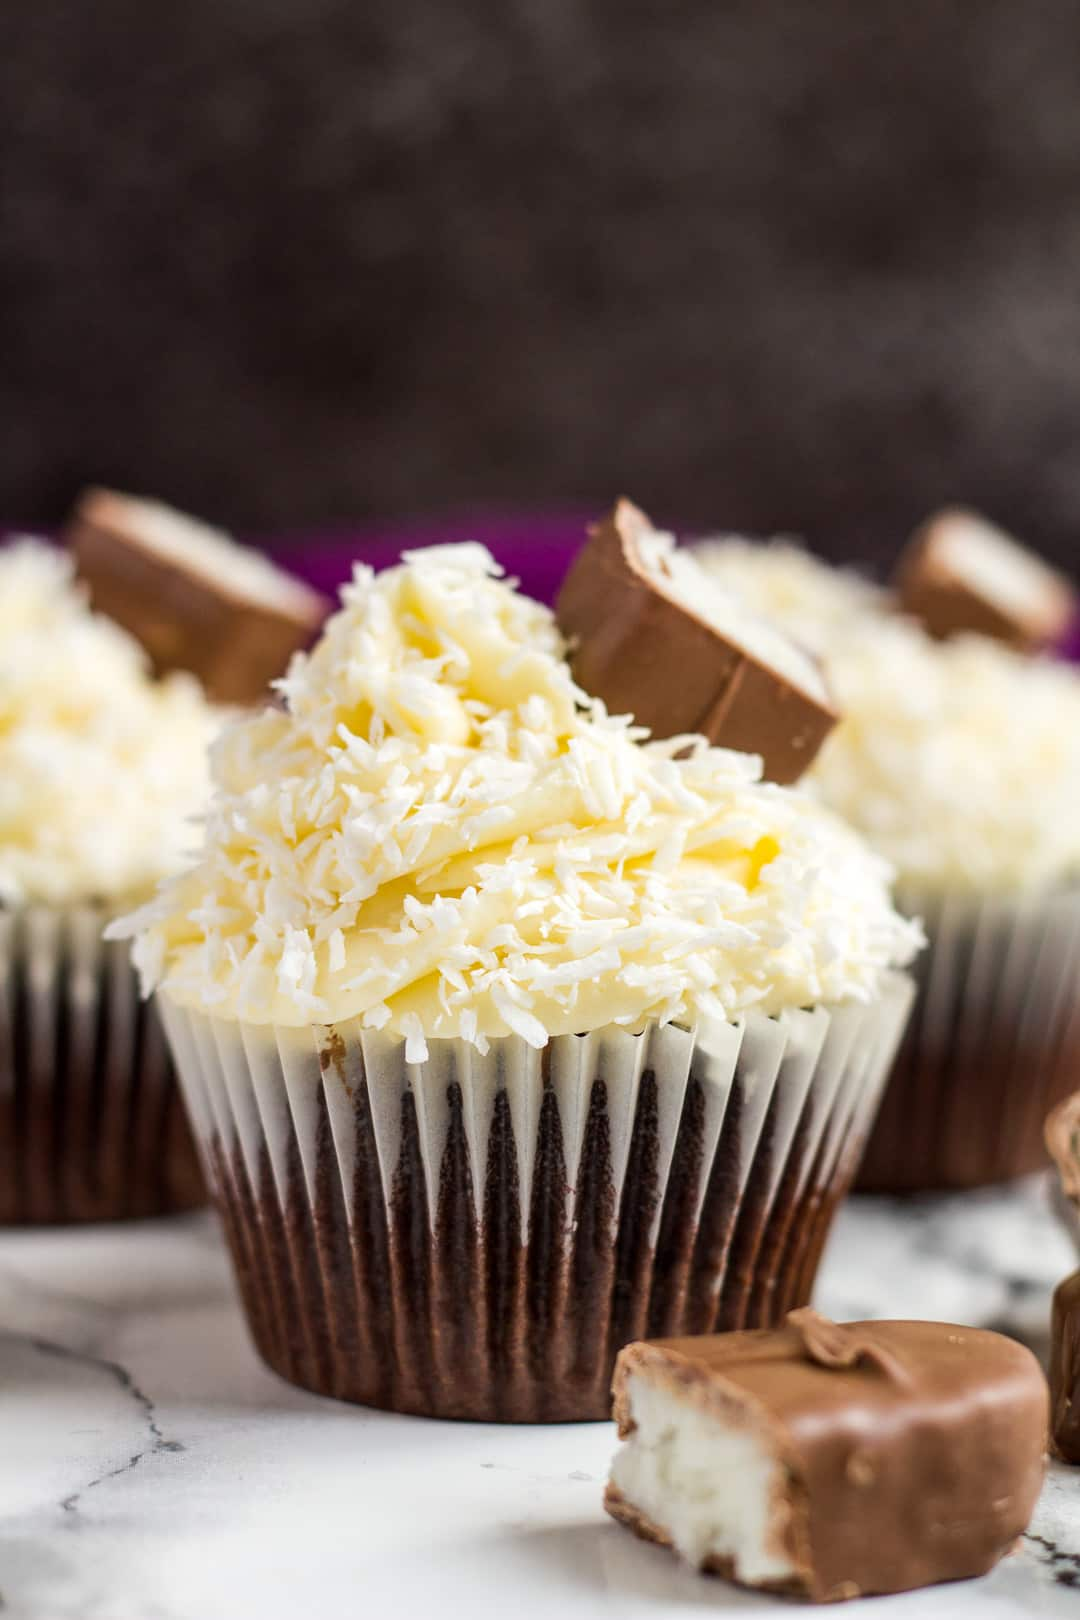 Chocolate Coconut Cupcakes - Deliciously moist and fluffy chocolate cupcakes topped with a creamy coconut-infused buttercream frosting, and coated with desiccated coconut! Recipe on marshasbakingaddiction.com